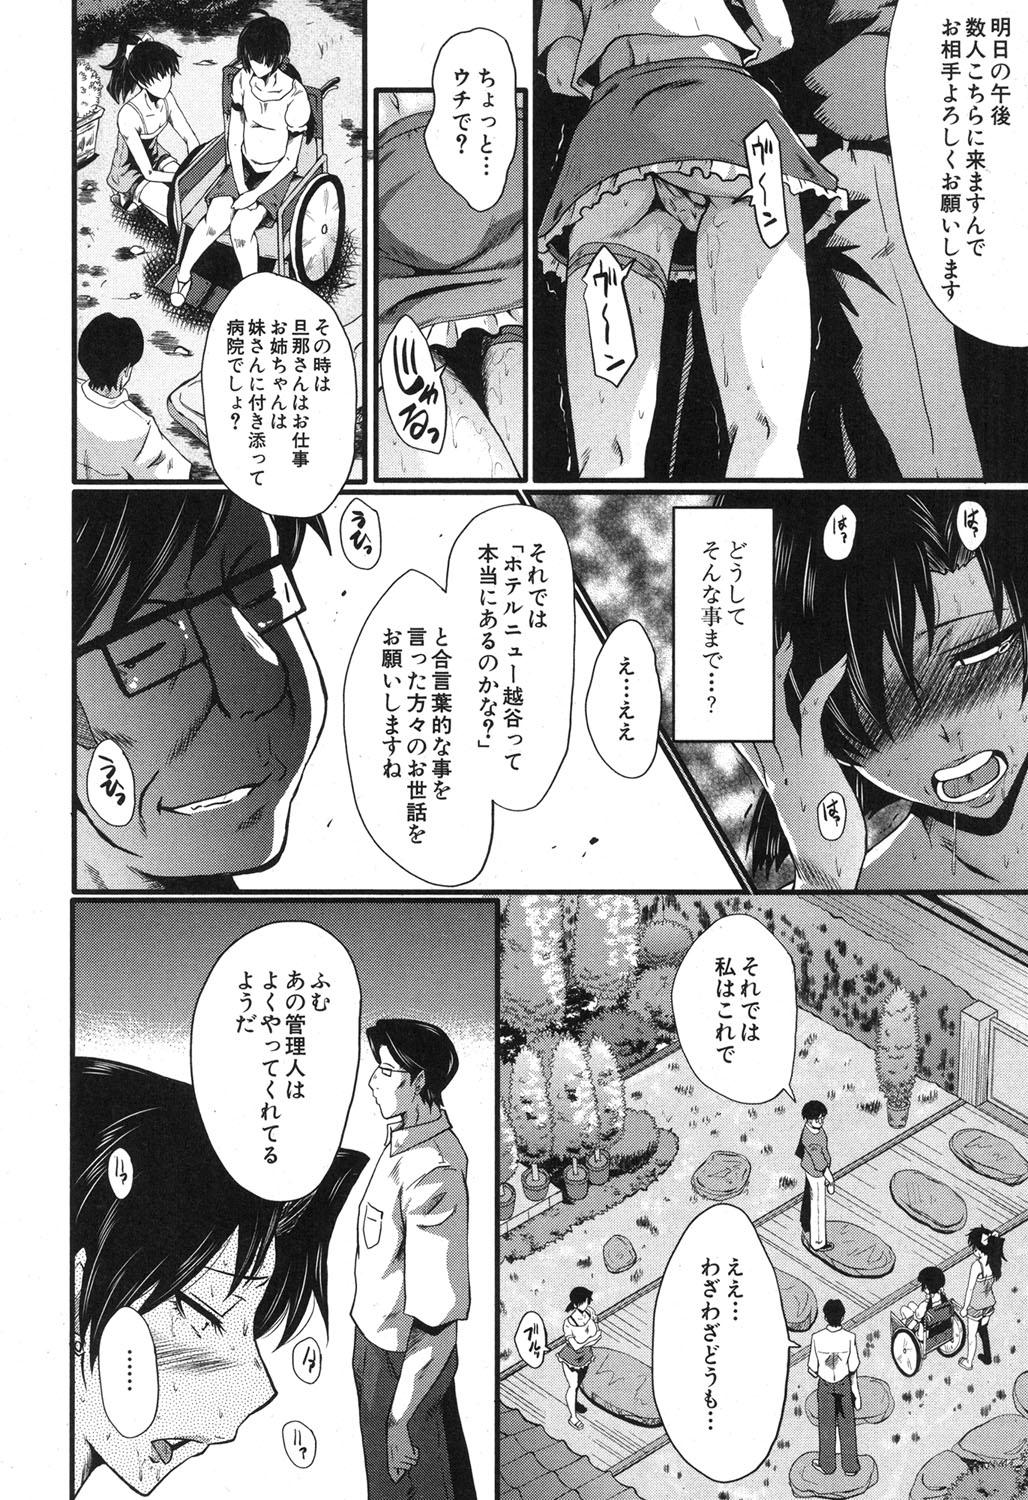 BUSTER COMIC 2015-11 116